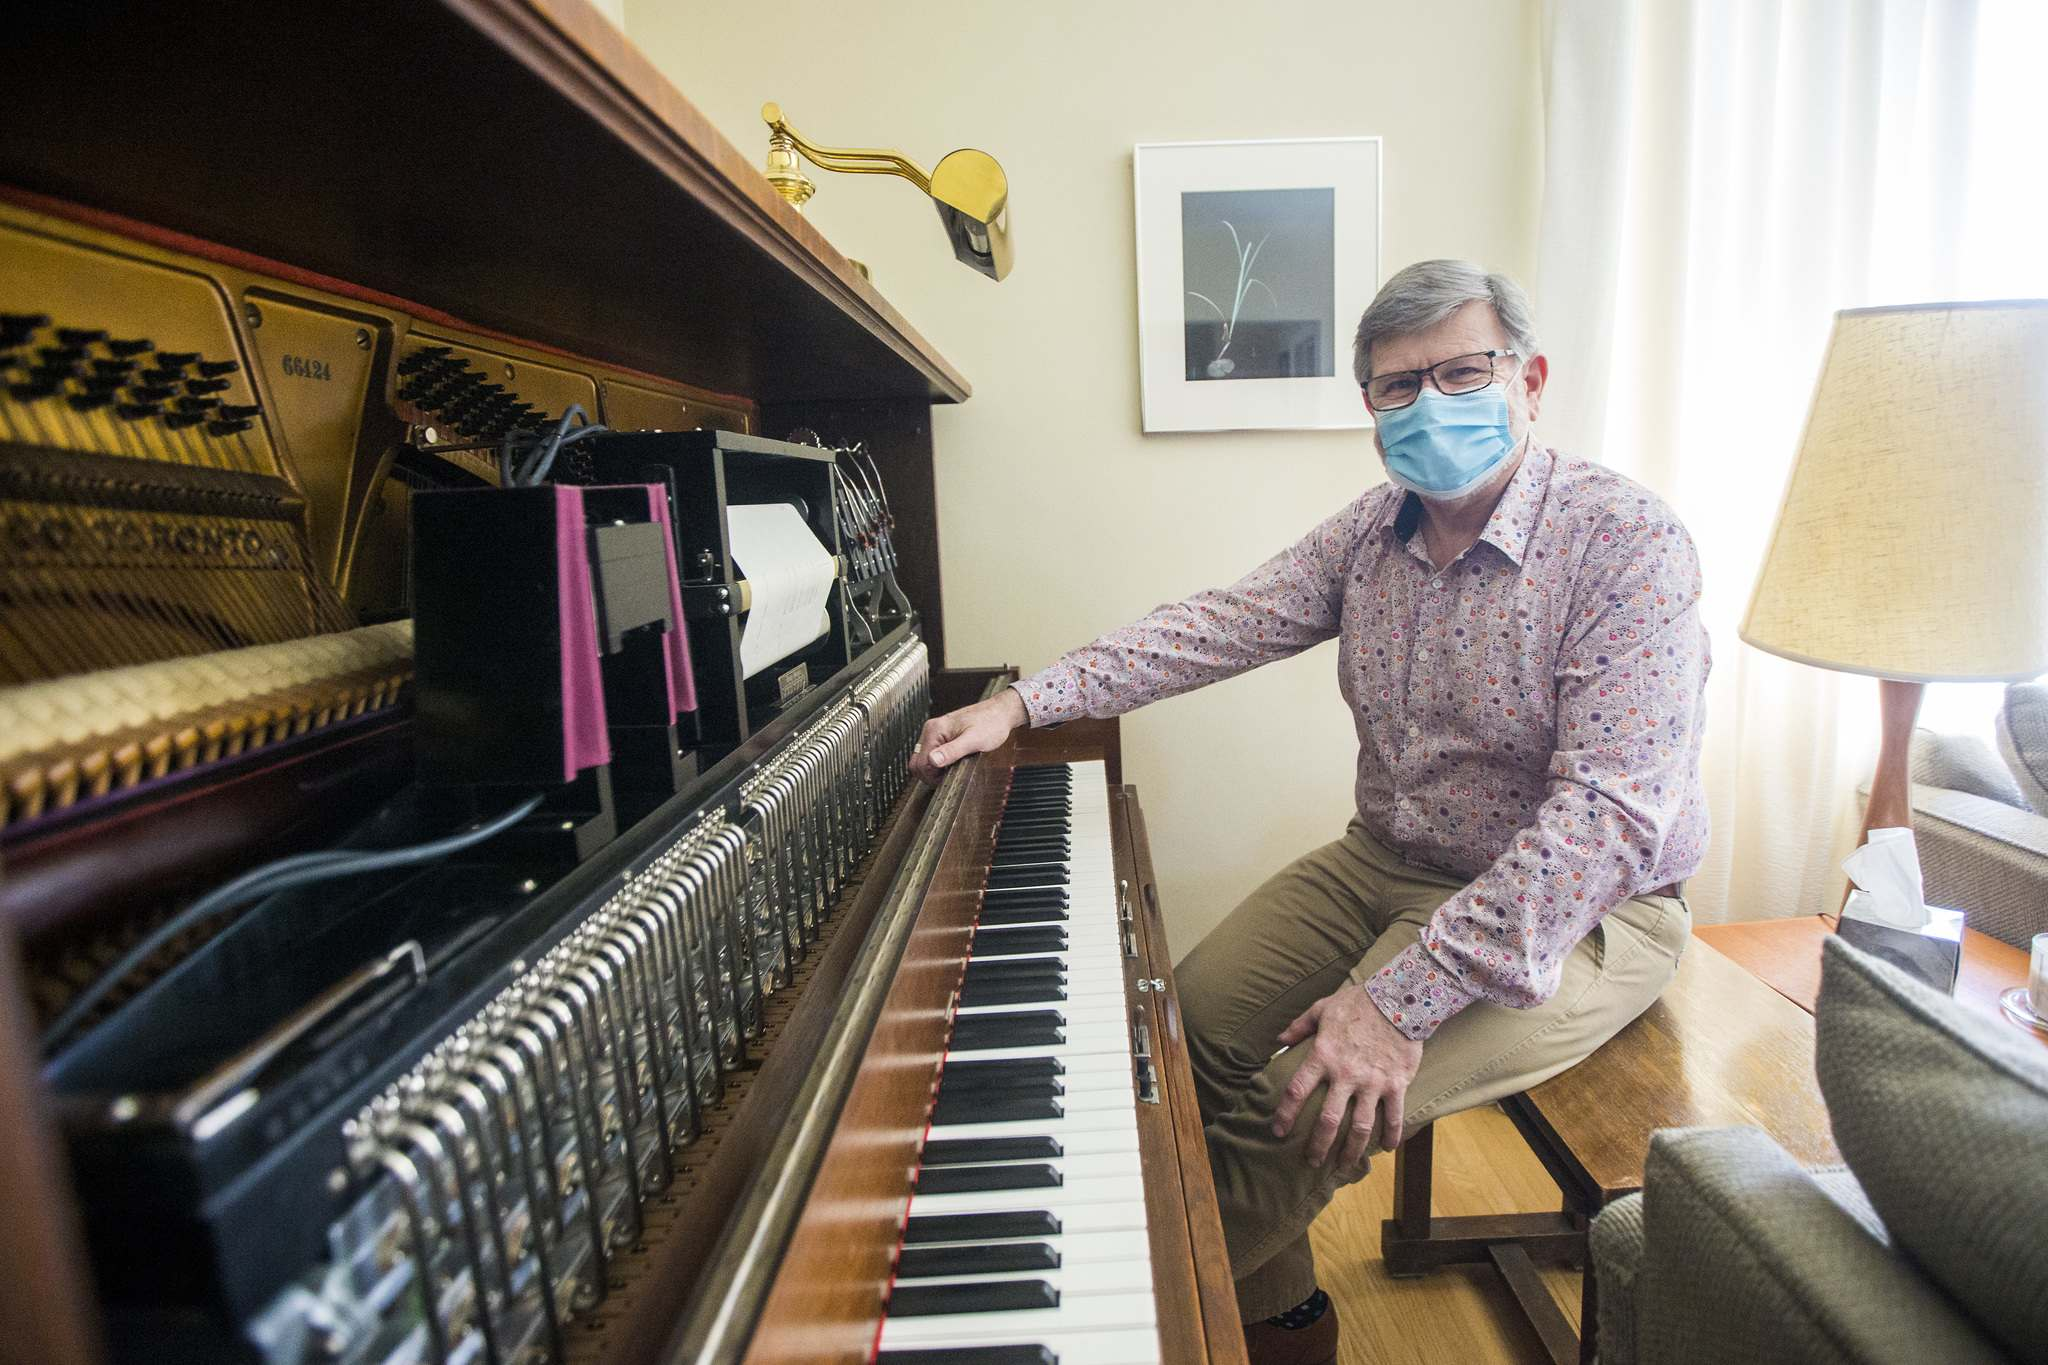 photos by MIKAELA MACKENZIE / WINNIPEG FREE PRESS</p><p>Andrew Thomson with a player piano in his East Kildonan home. The collector and restorer has nurtured a passion for the 'pianola' since childhood.</p></p>